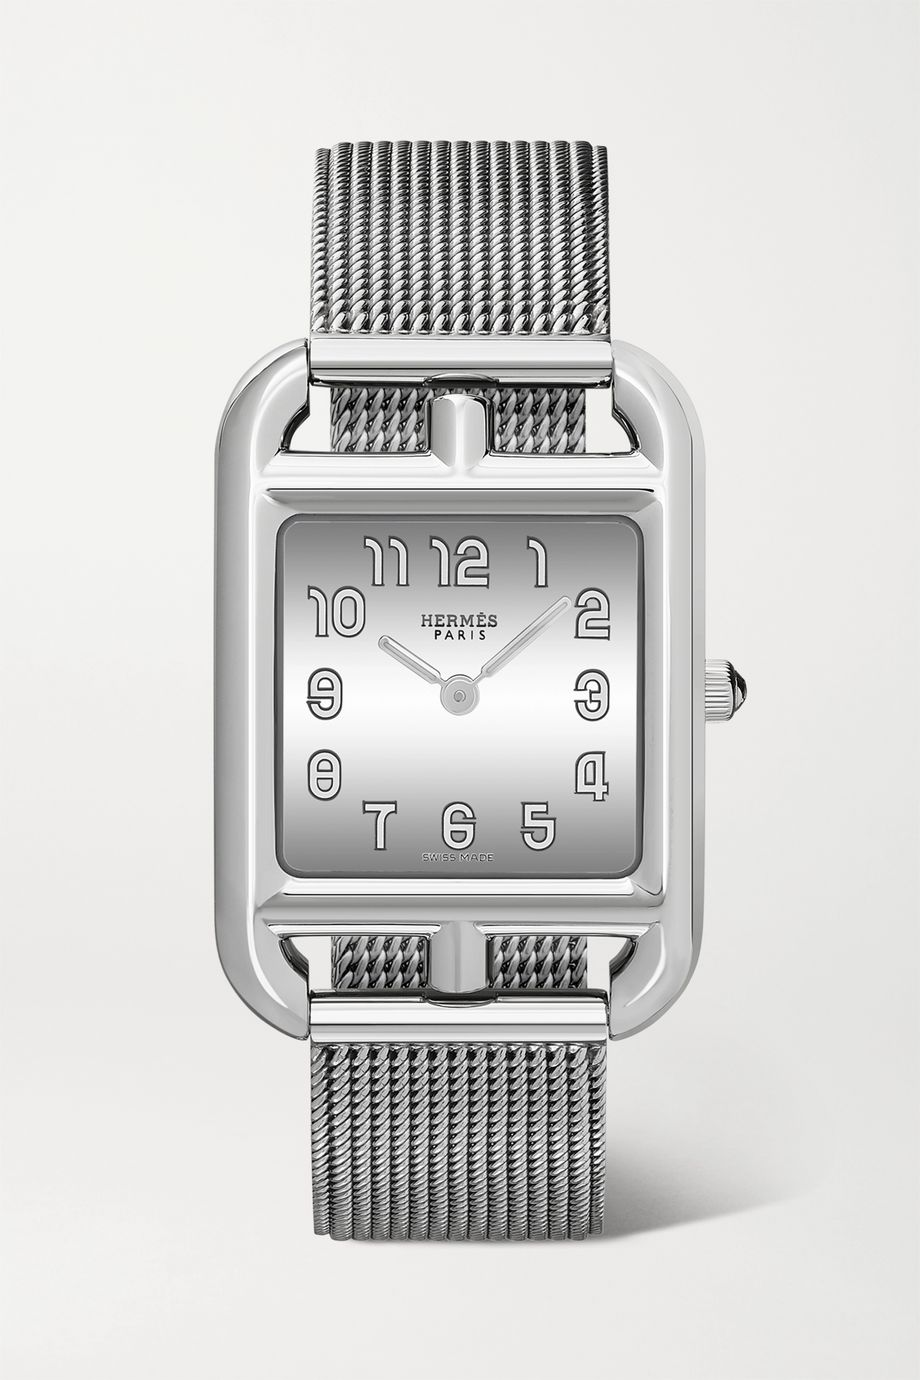 Hermès Timepieces Cape Cod 23mm small stainless steel watch